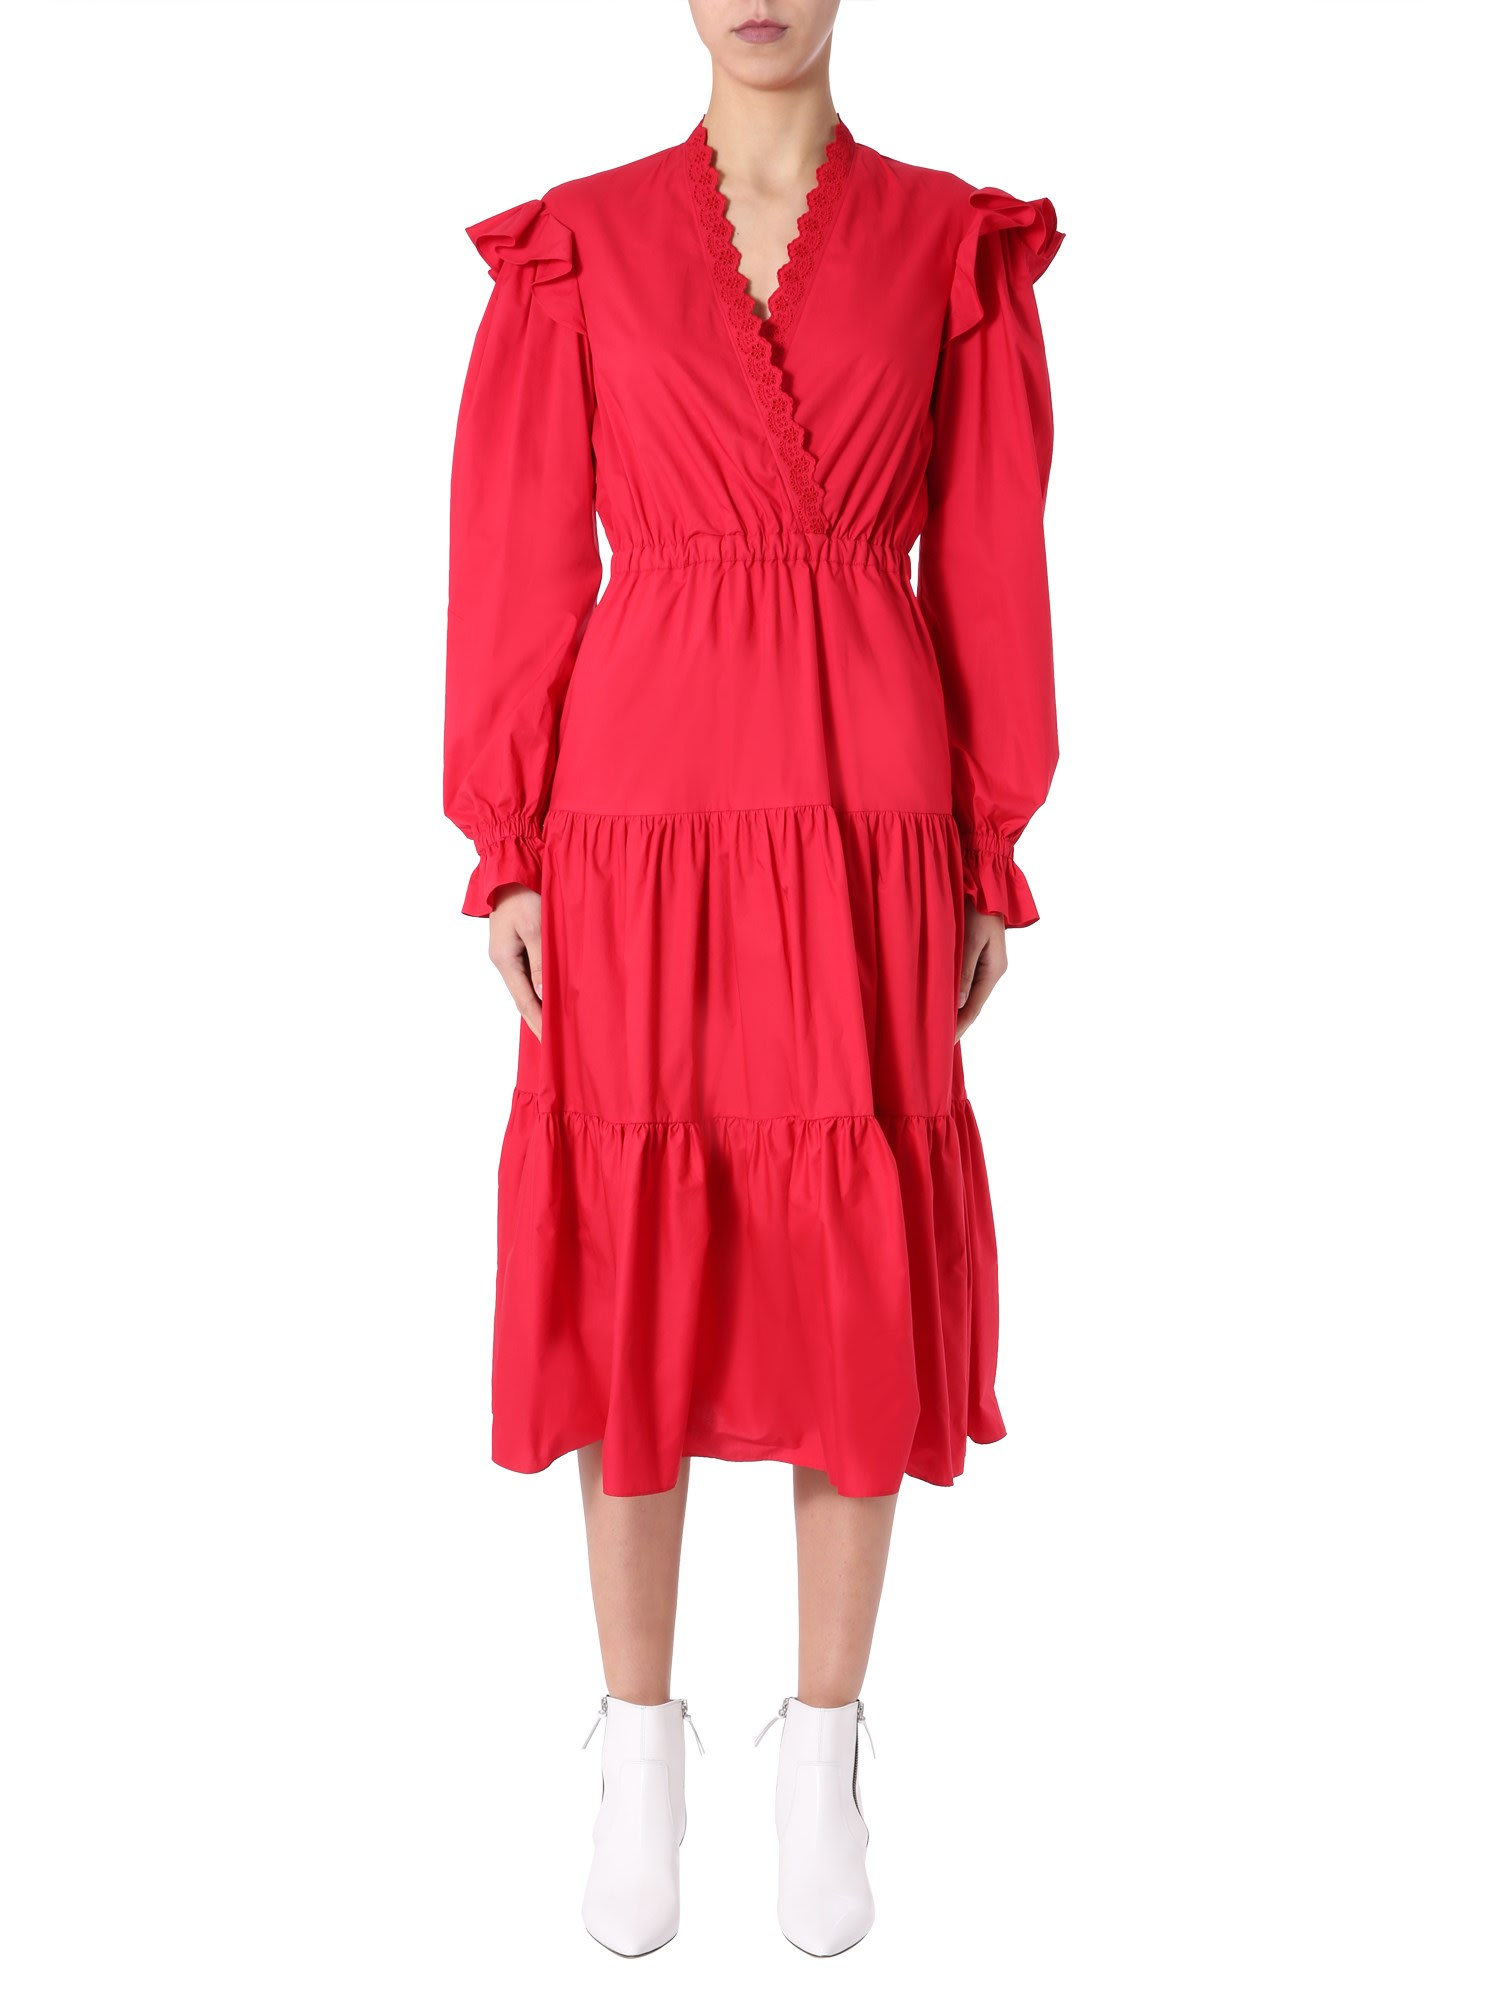 Buy Philosophy di Lorenzo Serafini Dress With Frills online, shop Philosophy di Lorenzo Serafini with free shipping